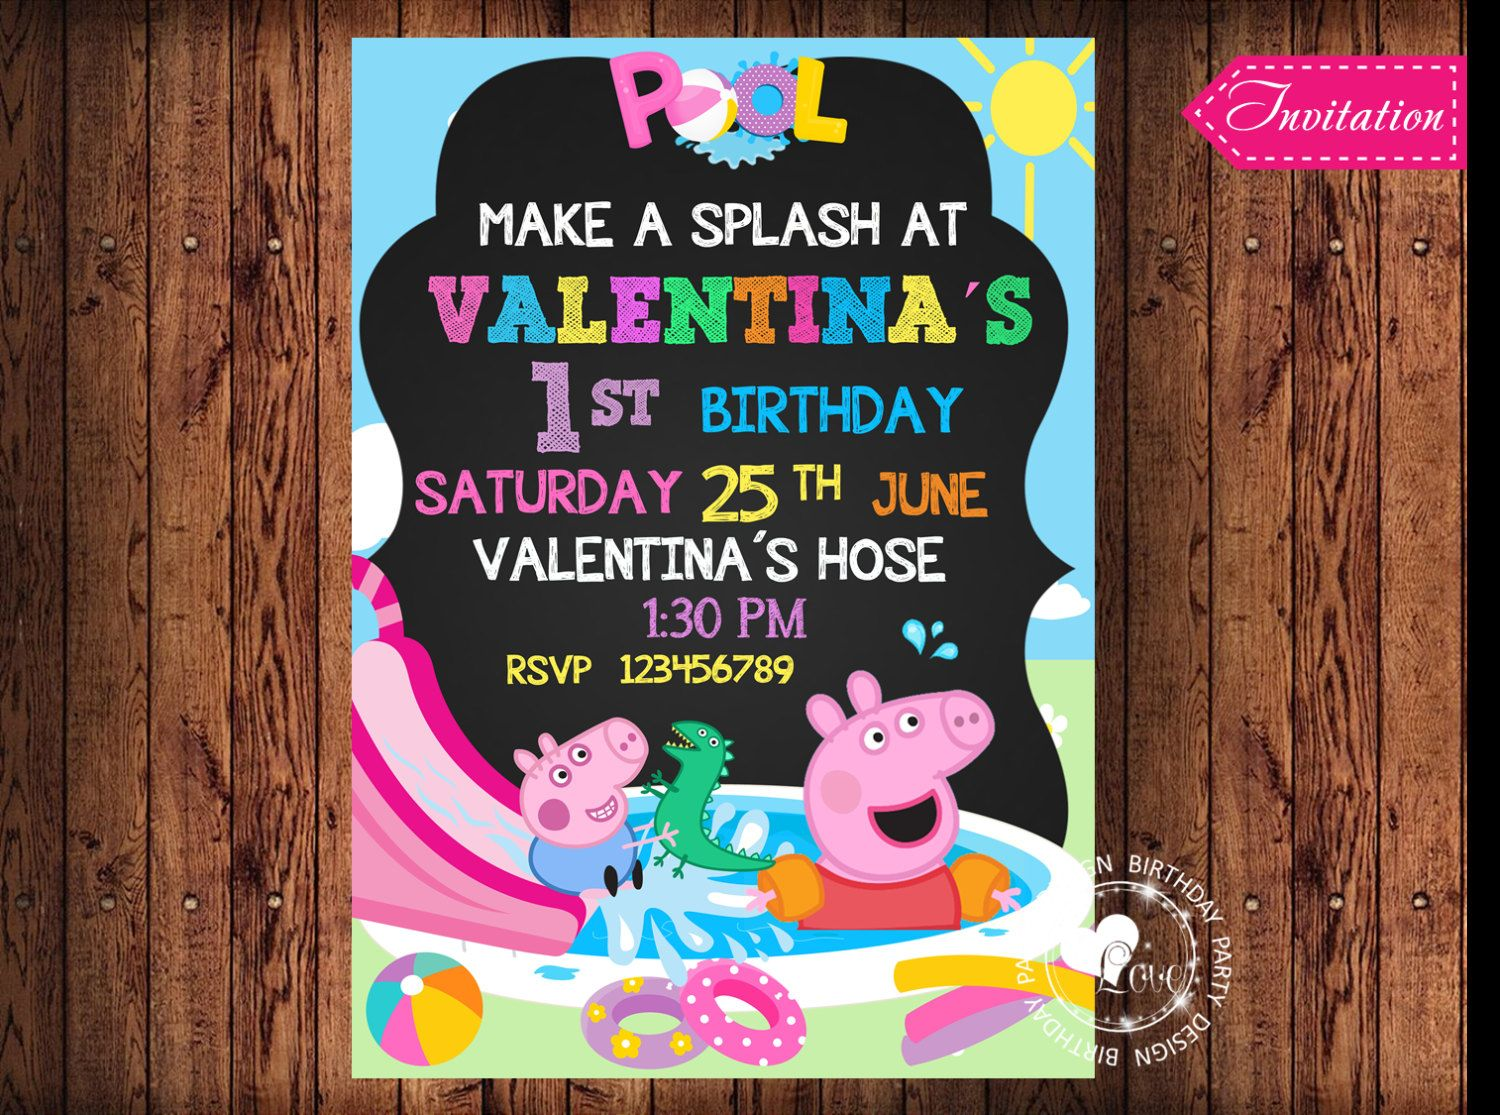 La Piscina De Peppa Pig Peppa Pig Pool Party Invitation Pool Party Por